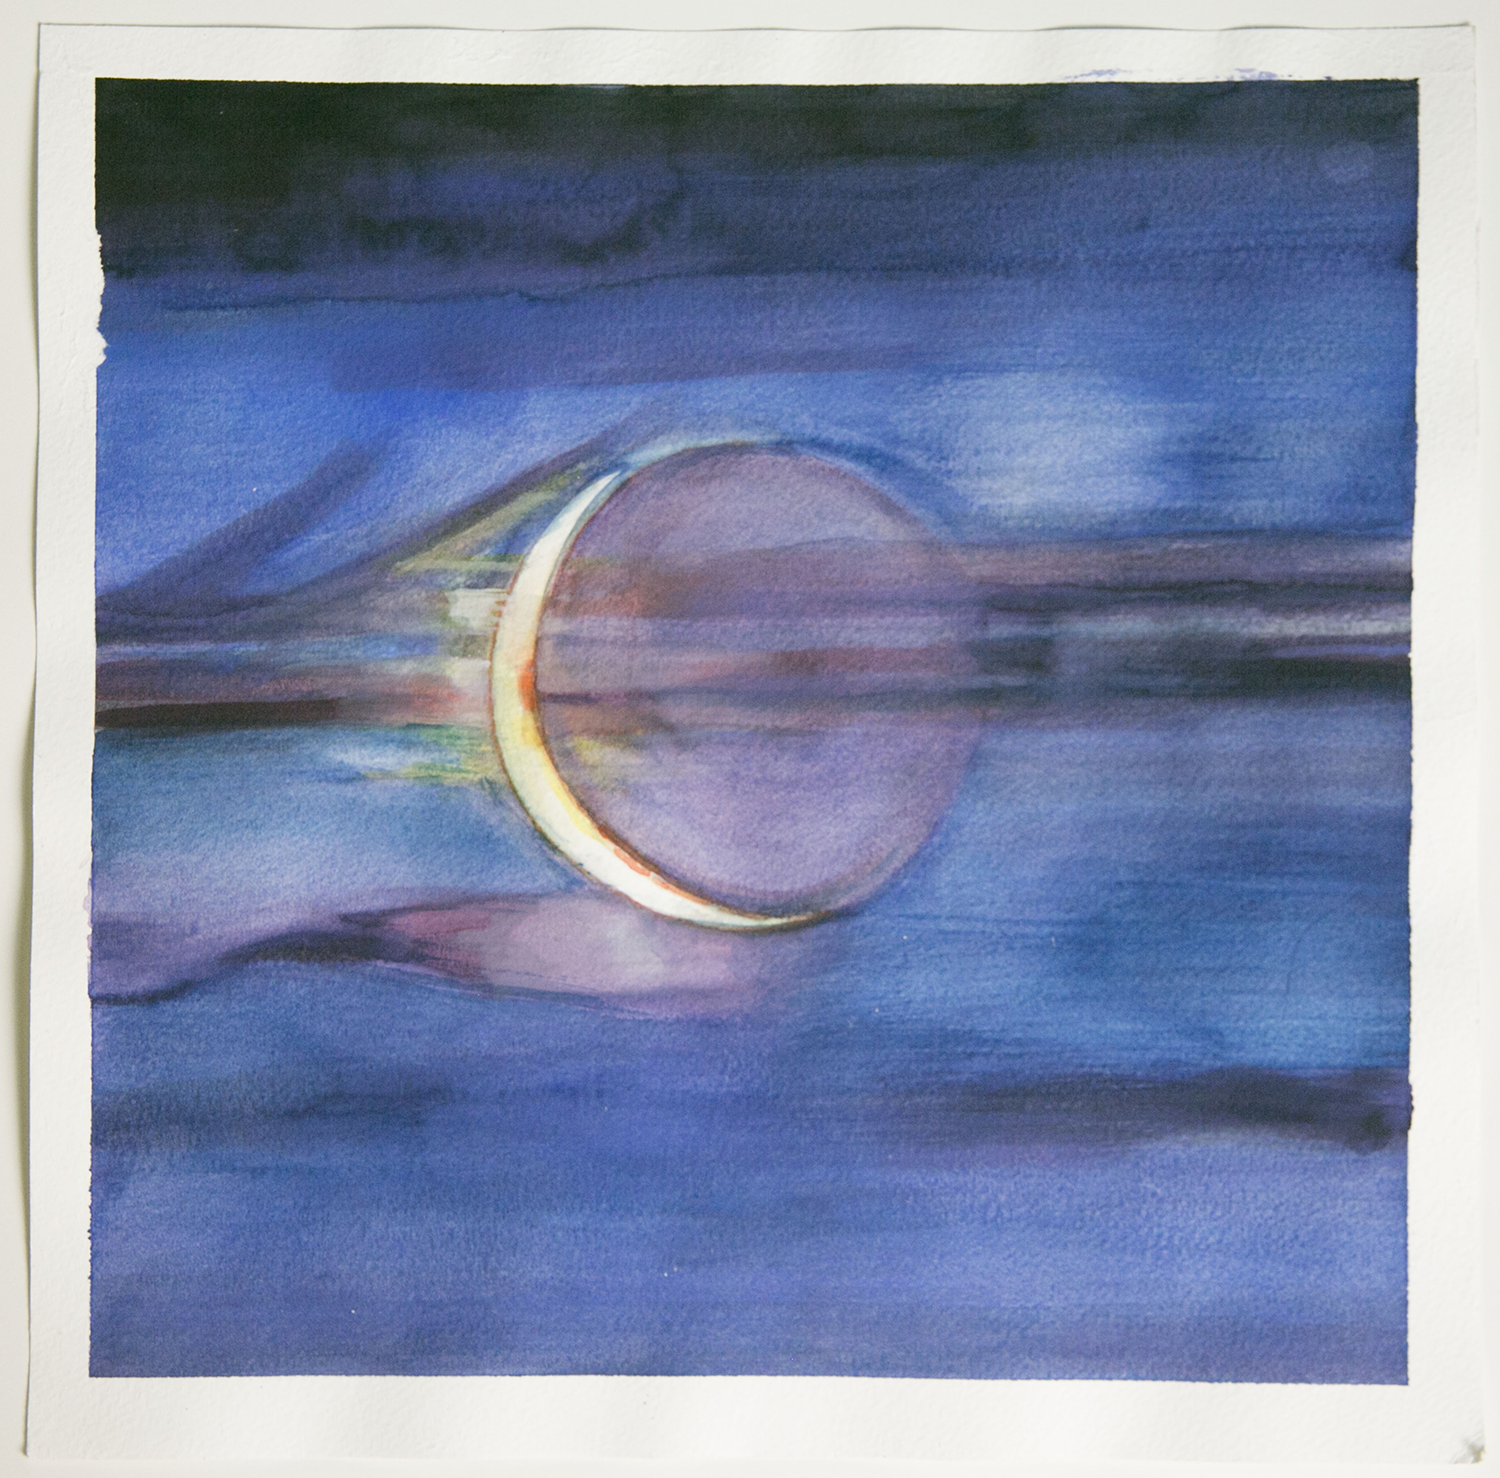 Crescent Moon  Japanese Watercolor on Paper  March 2015  10 inches by 10 inches